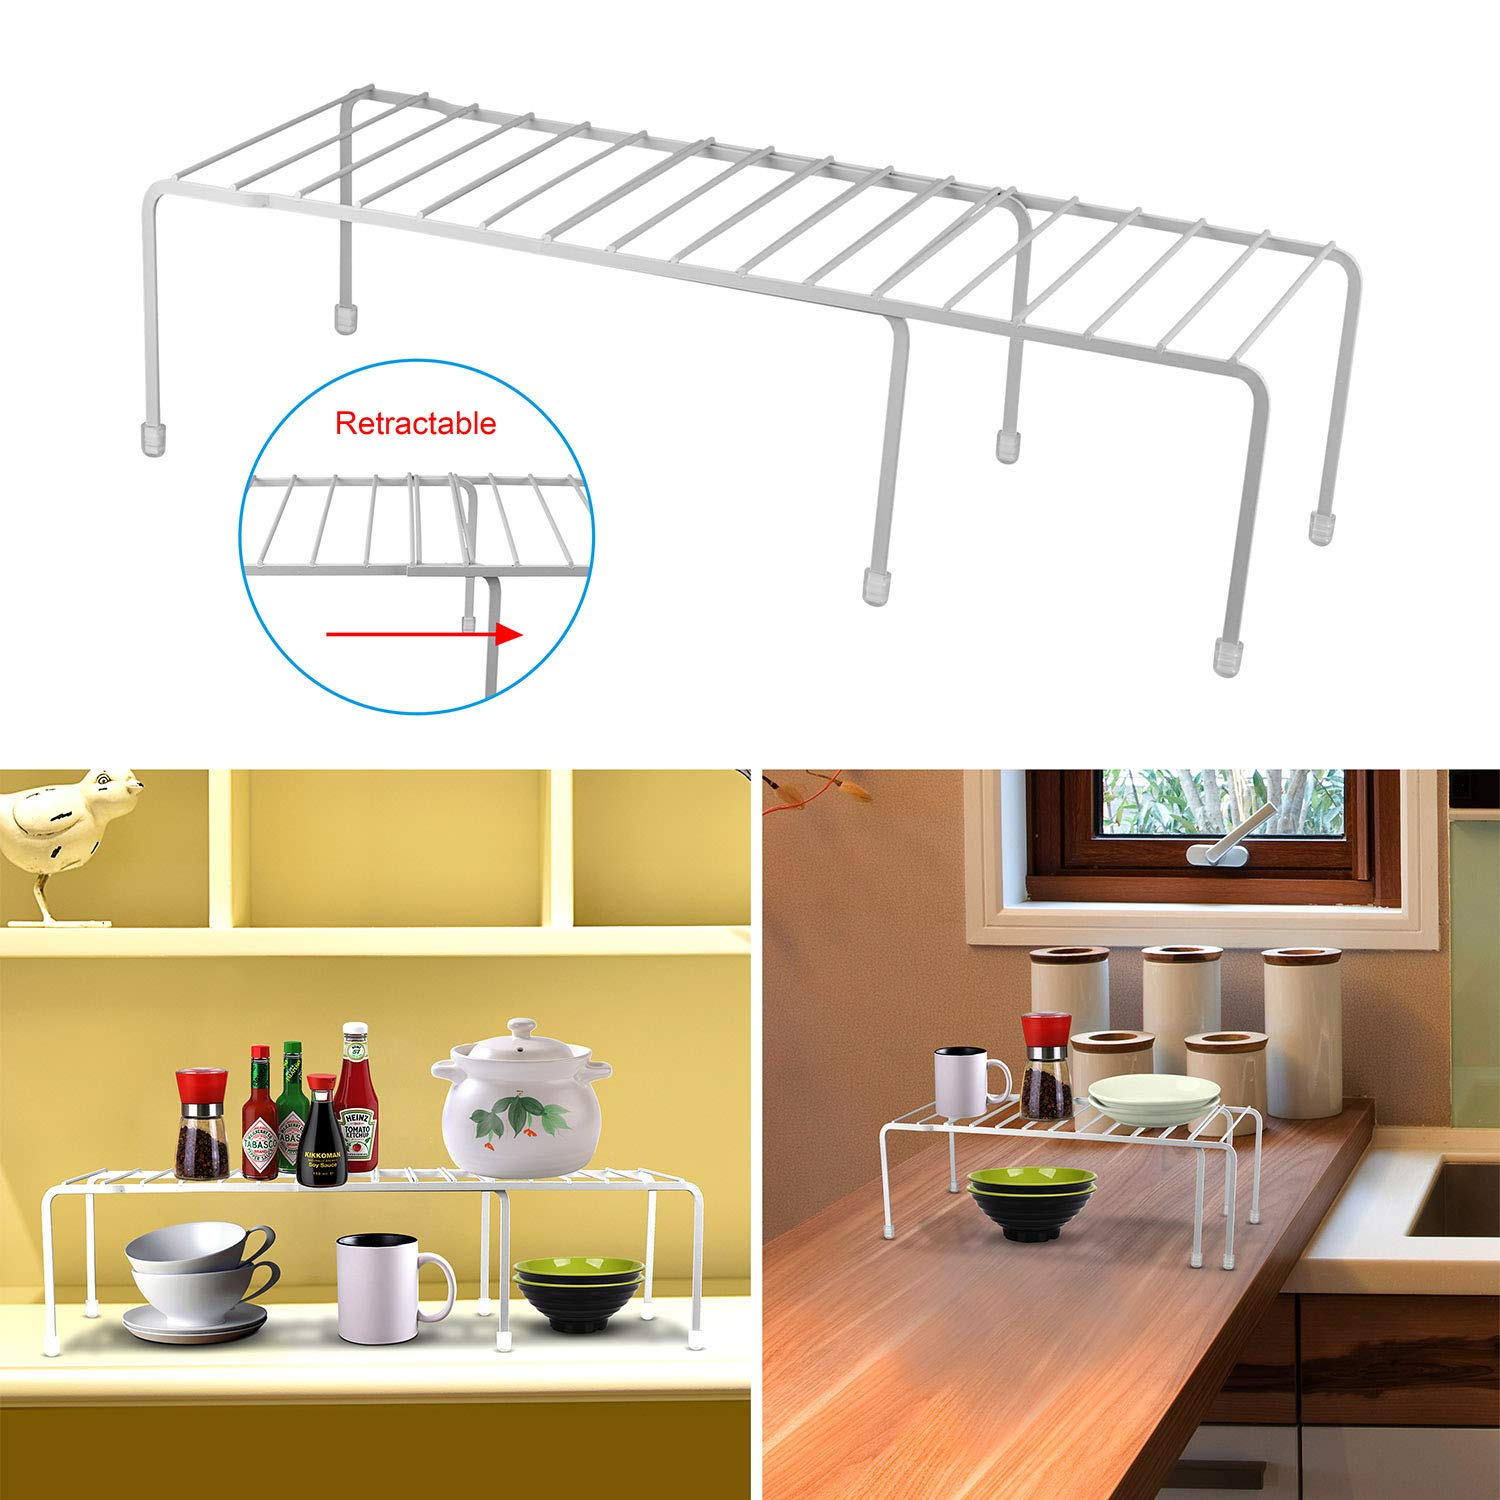 GPCT Expandable Kitchen Counter & Cabinet Shelf Organizer. Adjustable Pantry Countertop Storage Shelves- for Dishes/Dinnerware/Cookware/Spices/Canned Food/Tea Tins/Laundry. 33 lbs Capacity- White